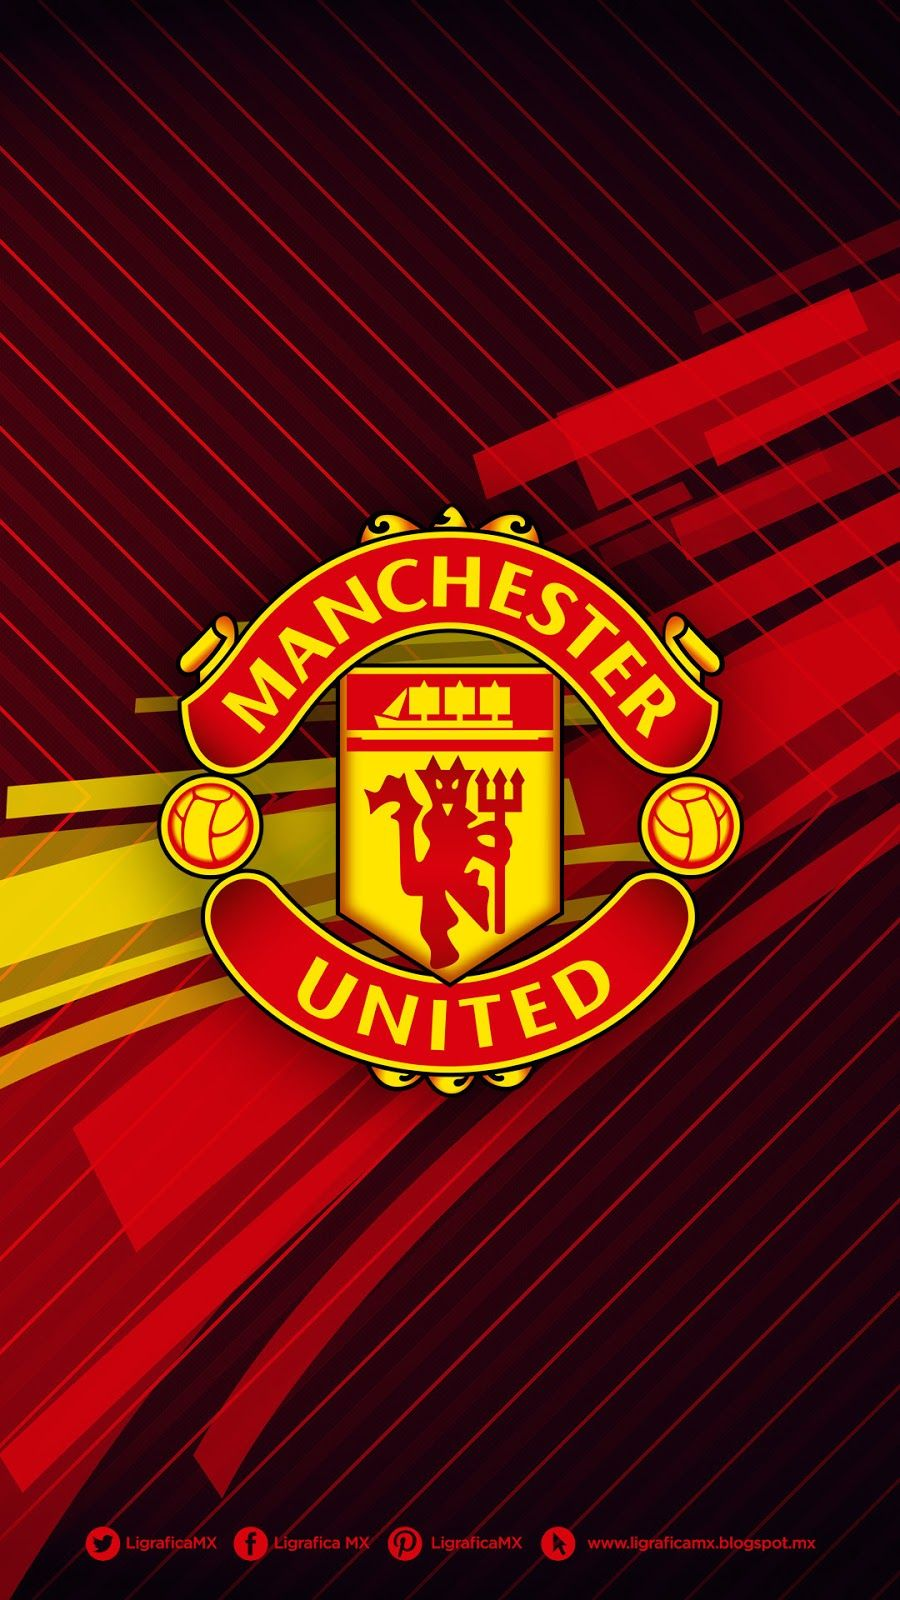 Manchester United Iphone Wallpaper Hd In 2020 Manchester United Wallpaper Manchester United Wallpapers Iphone Manchester United Logo